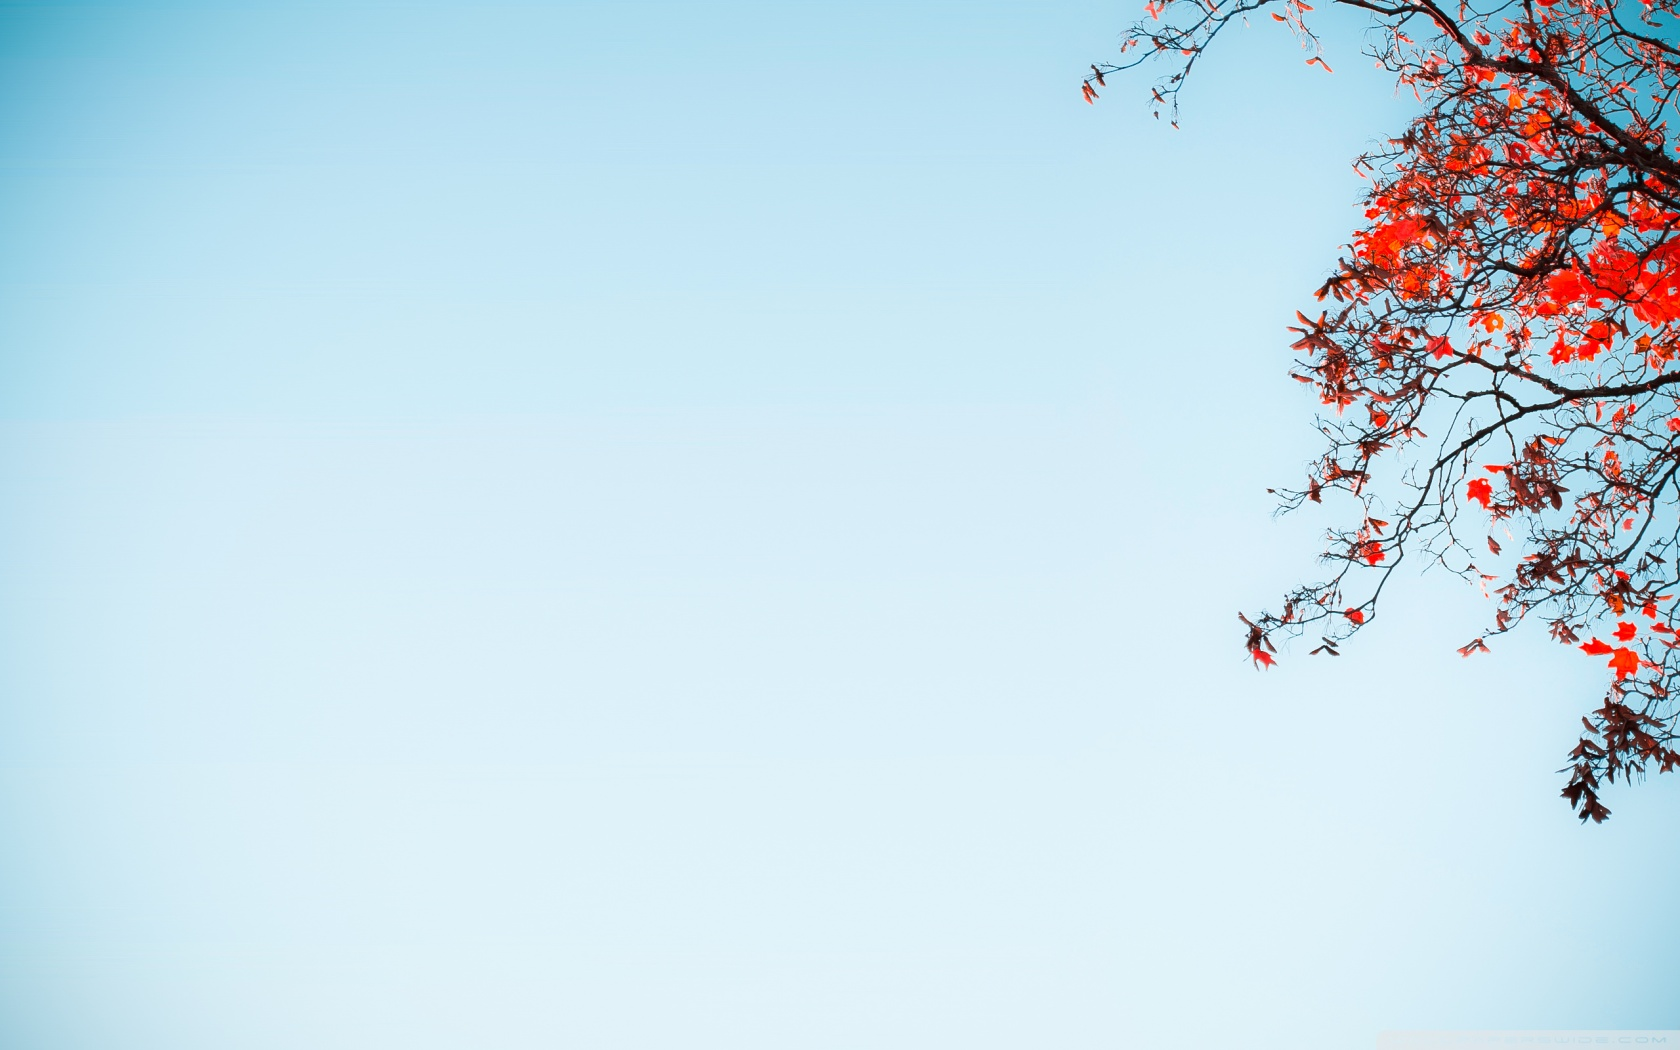 red_tree_against_a_blue_sky-wallpaper-1680×1050